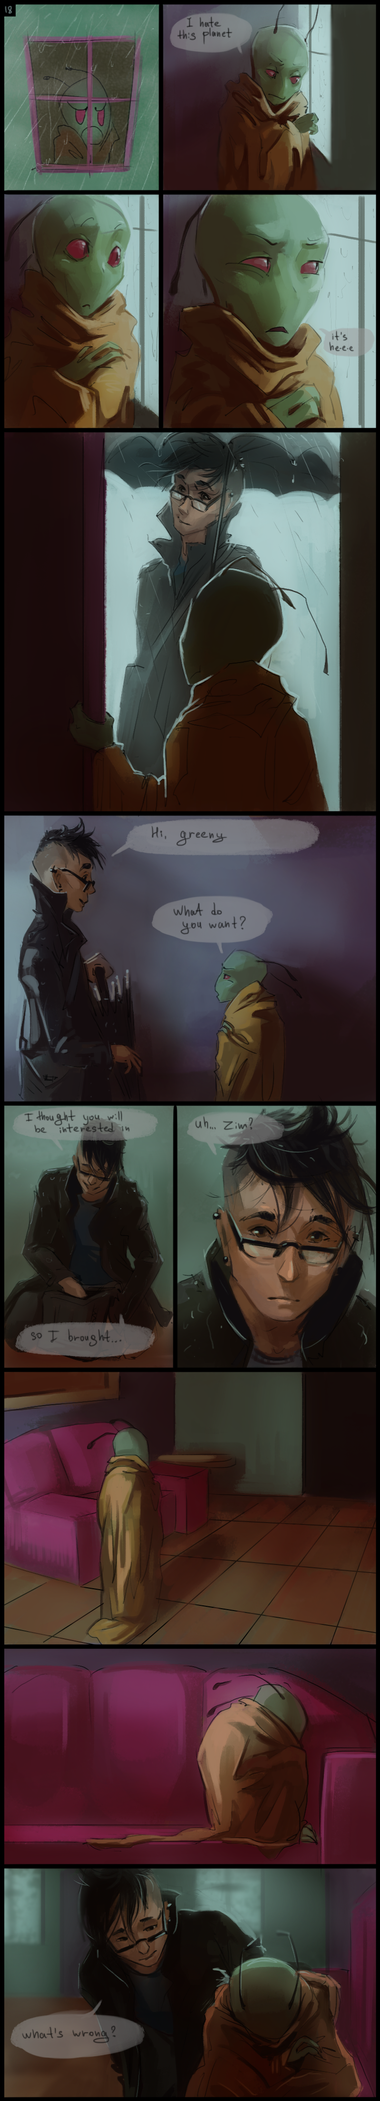 All your heat_page 1 by ysgwood